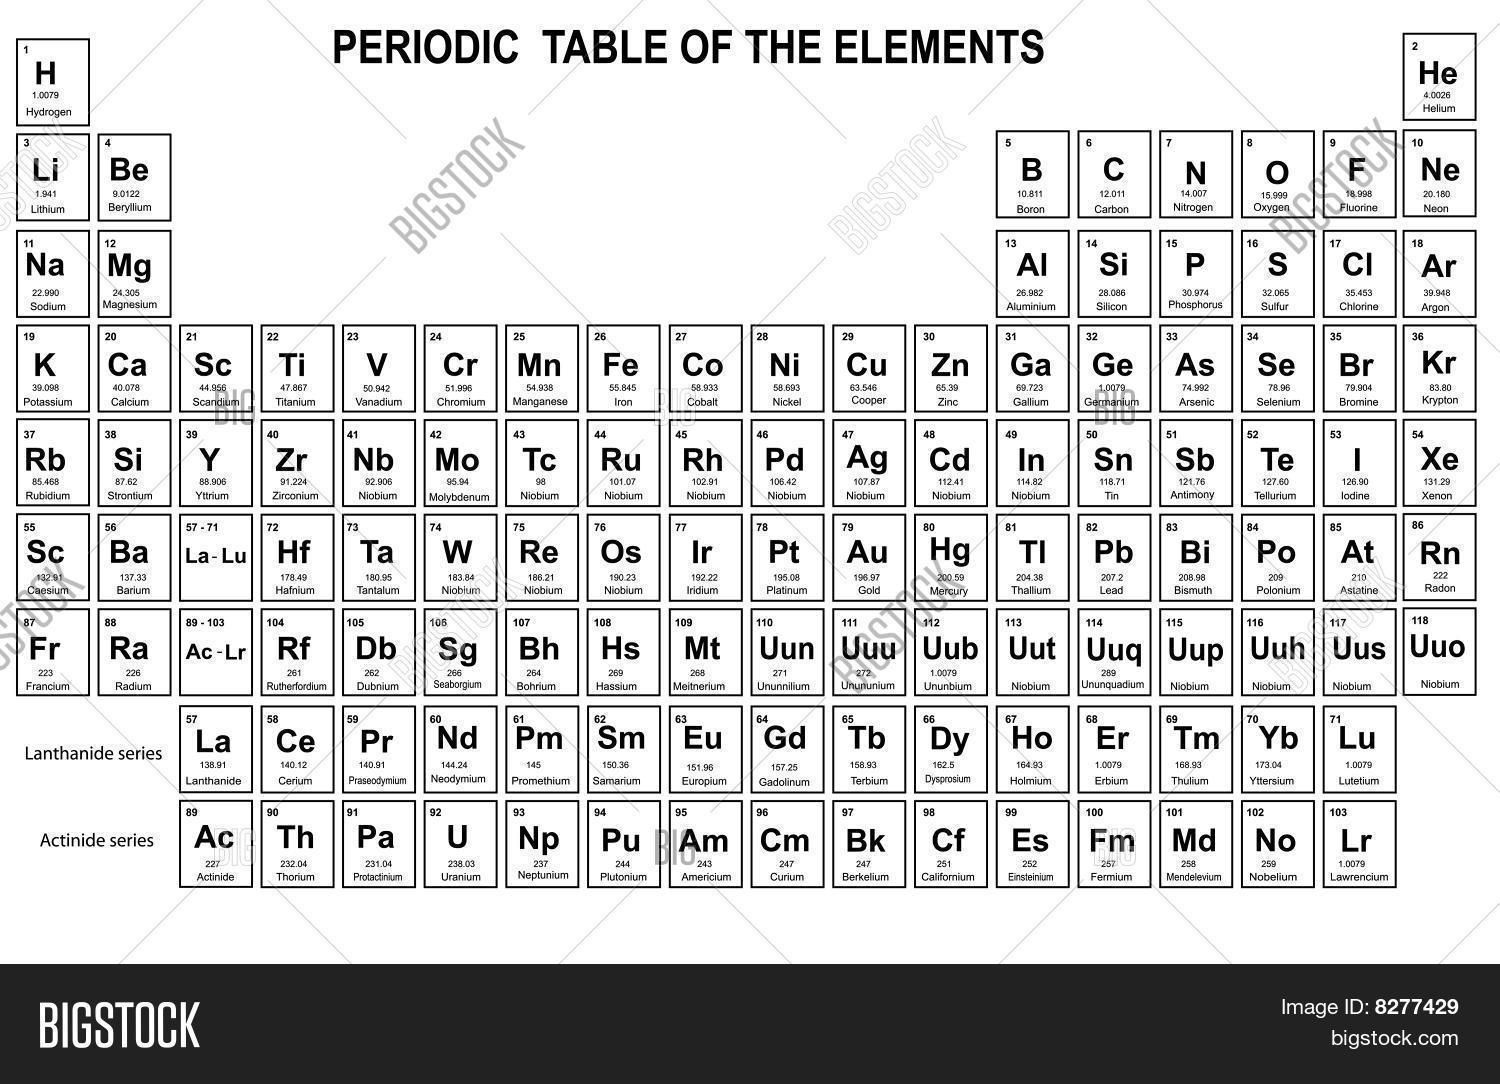 The gallery for periodic table atomic size - Size of atoms in periodic table ...